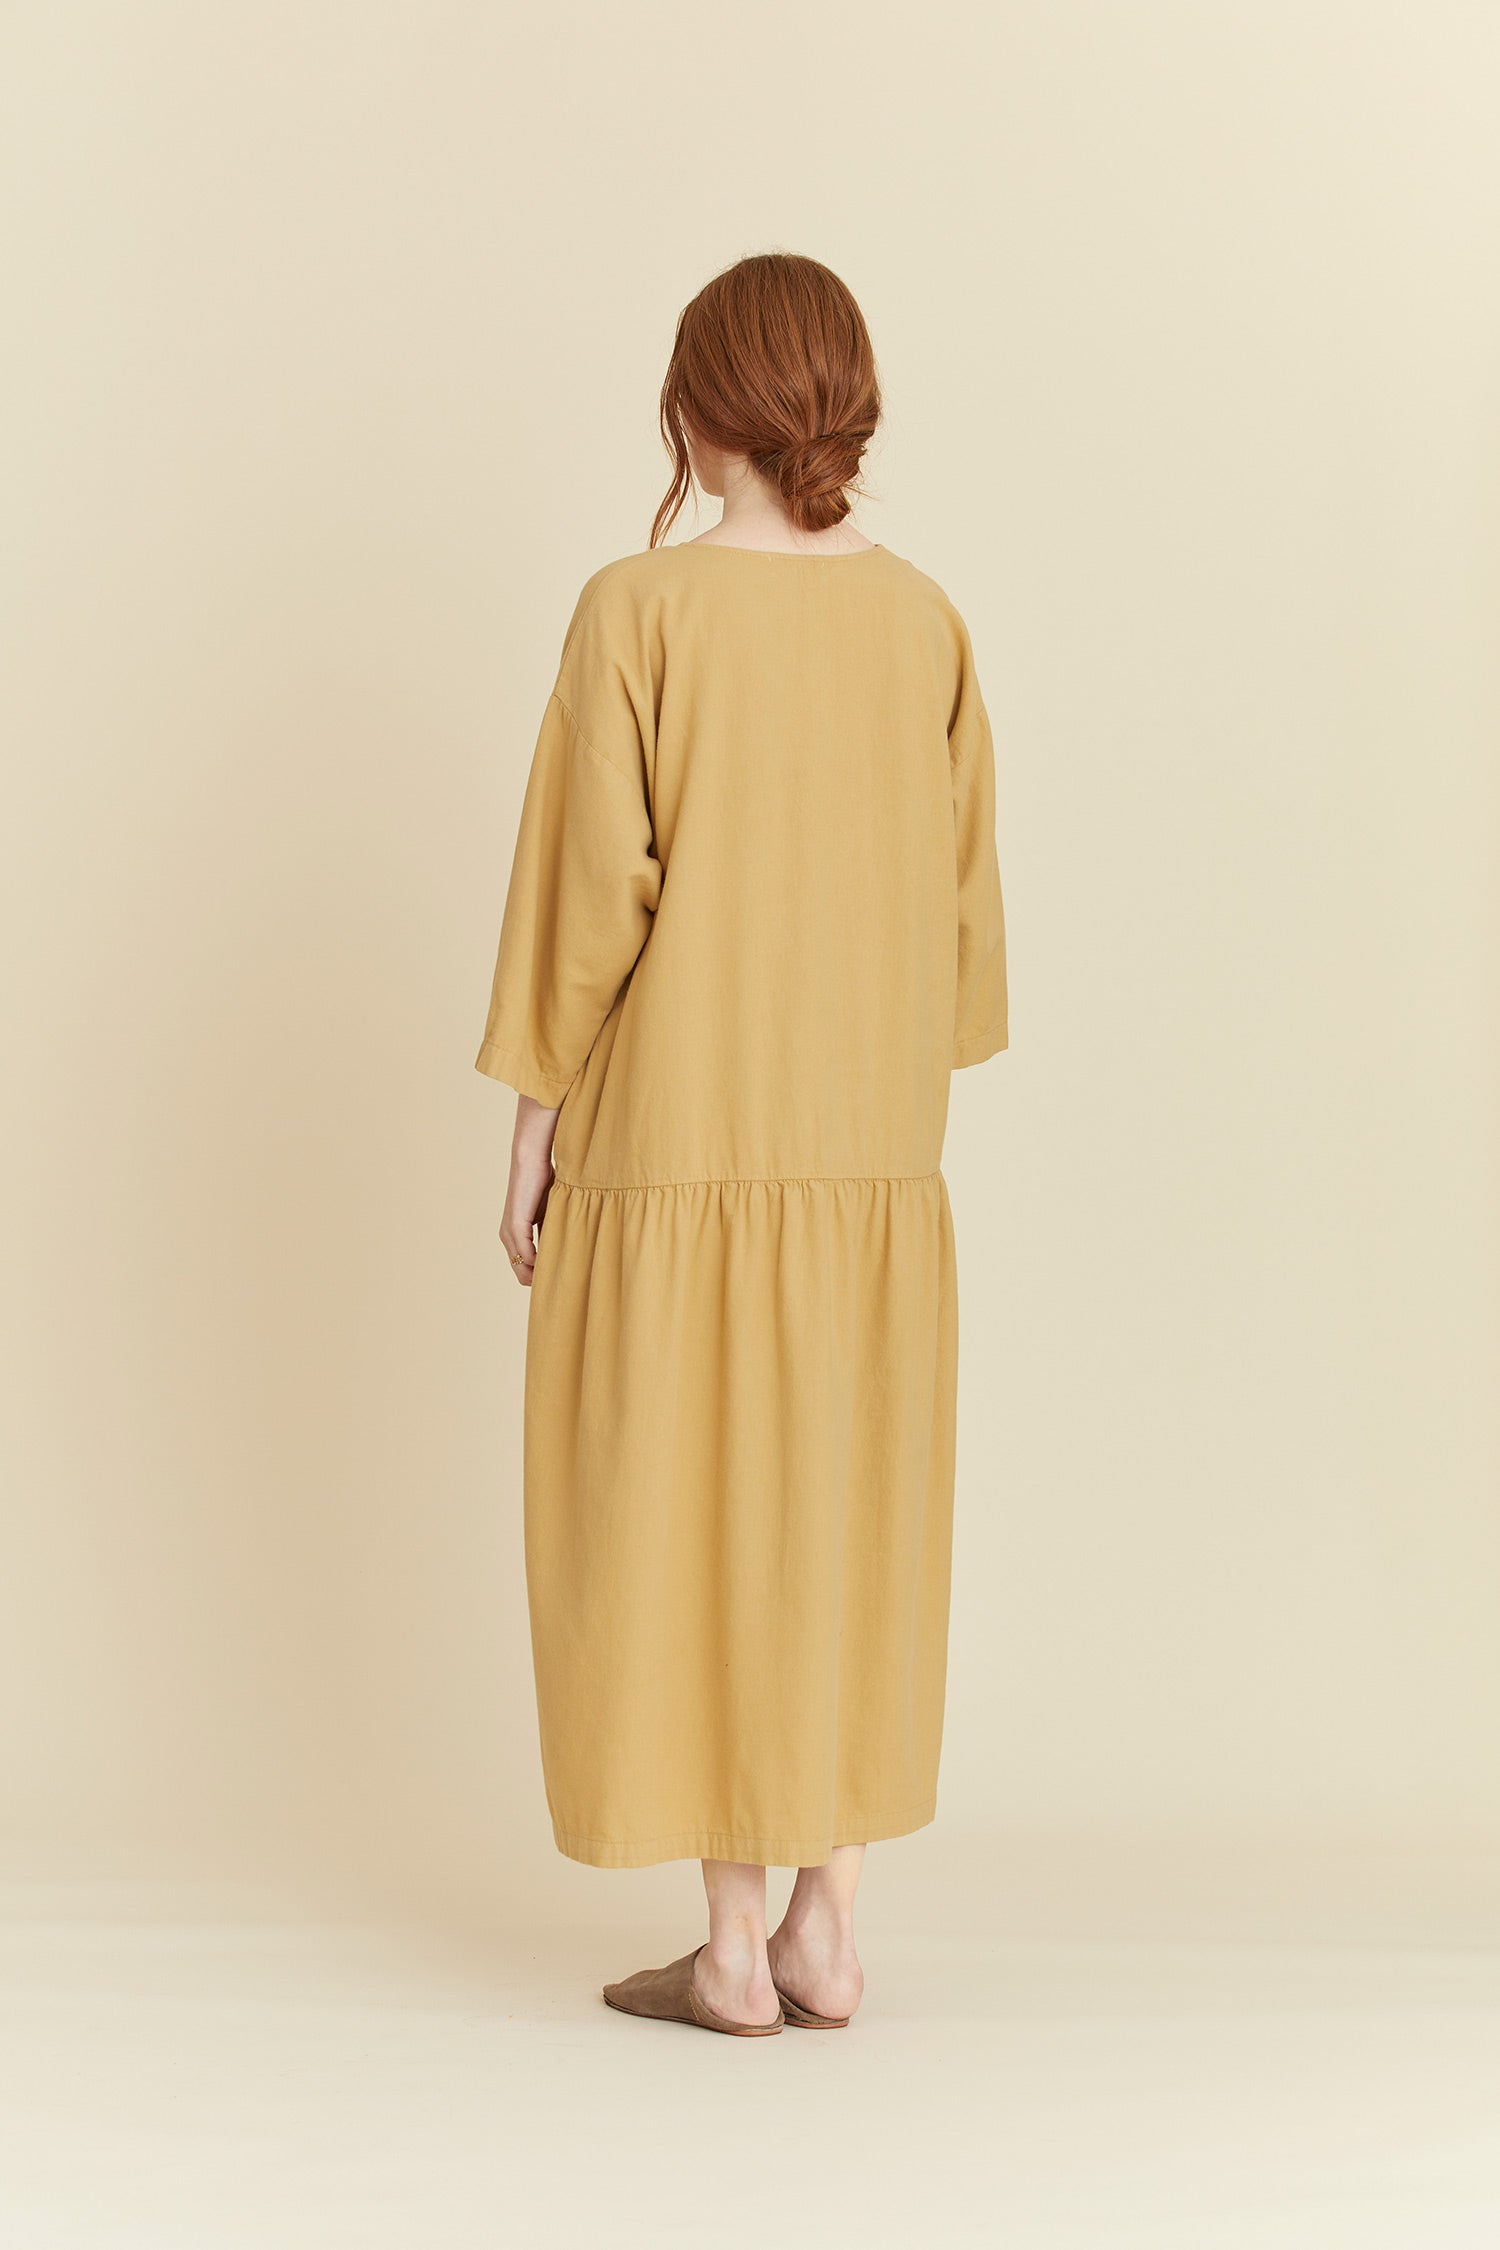 EASY DRESS / LF-ED04 / TAN